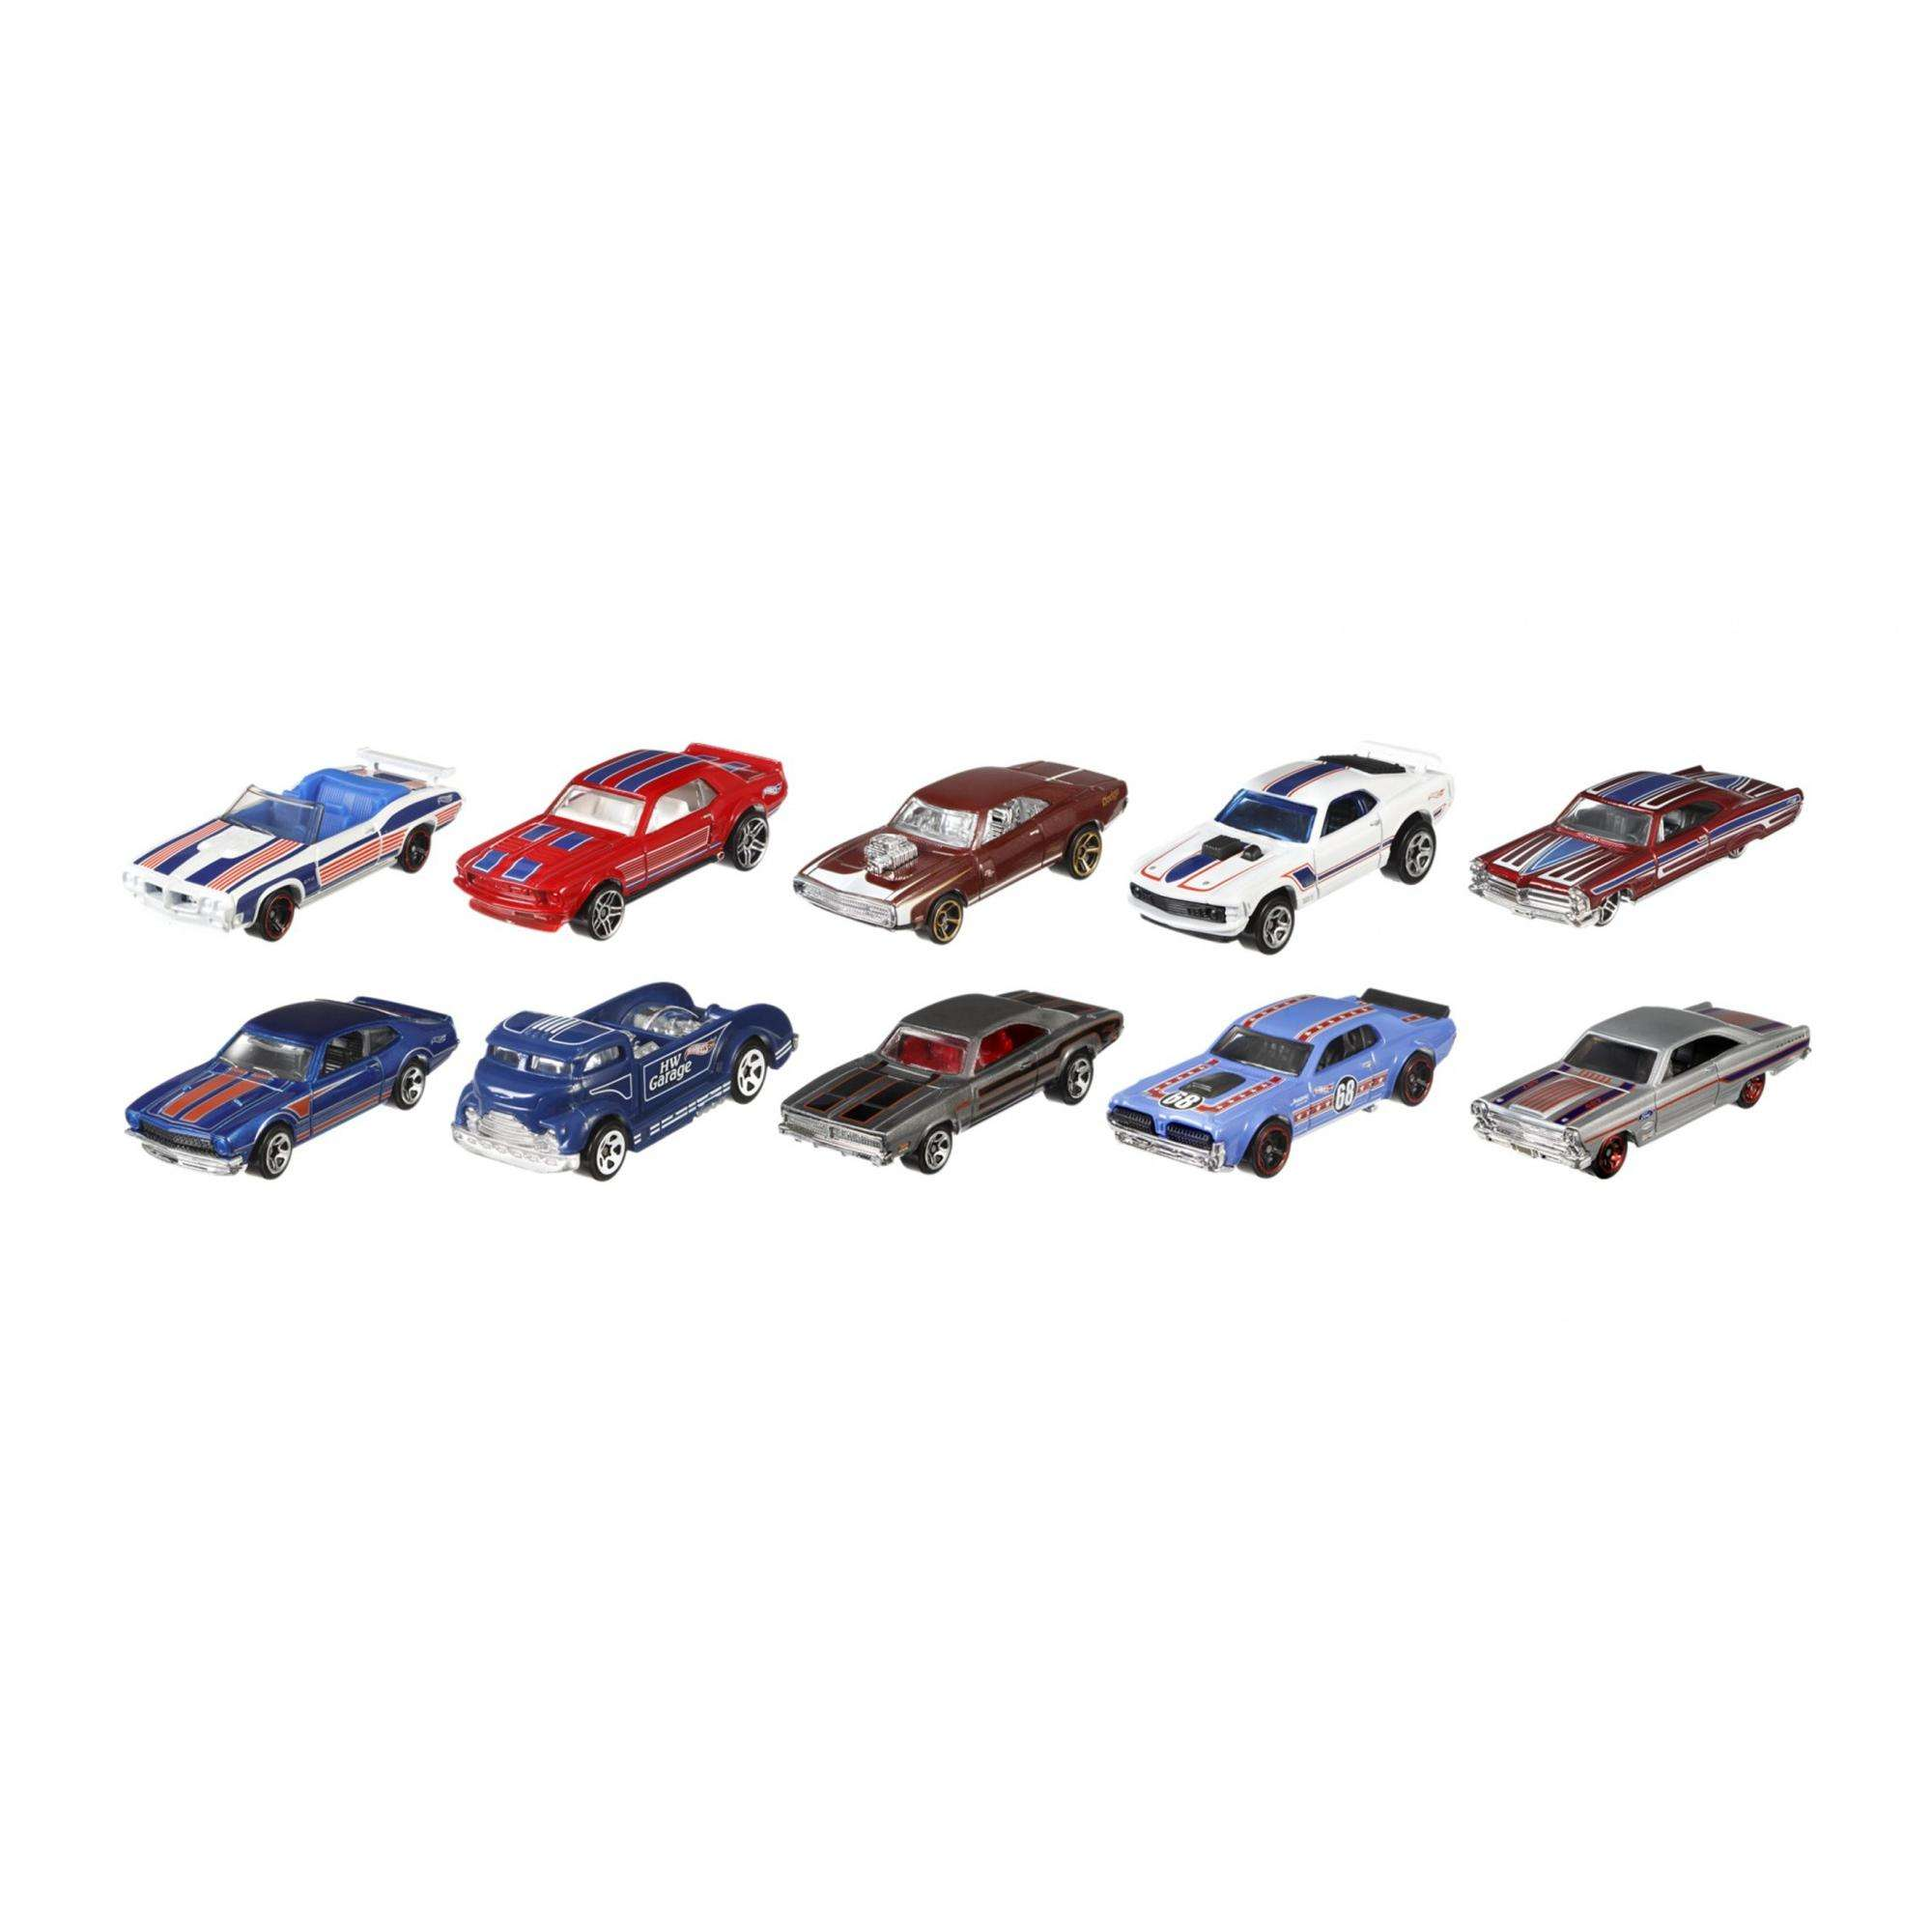 Hot Wheels Vintage American Muscle Die-Cast Vehicle (Style May Vary) by Mattel